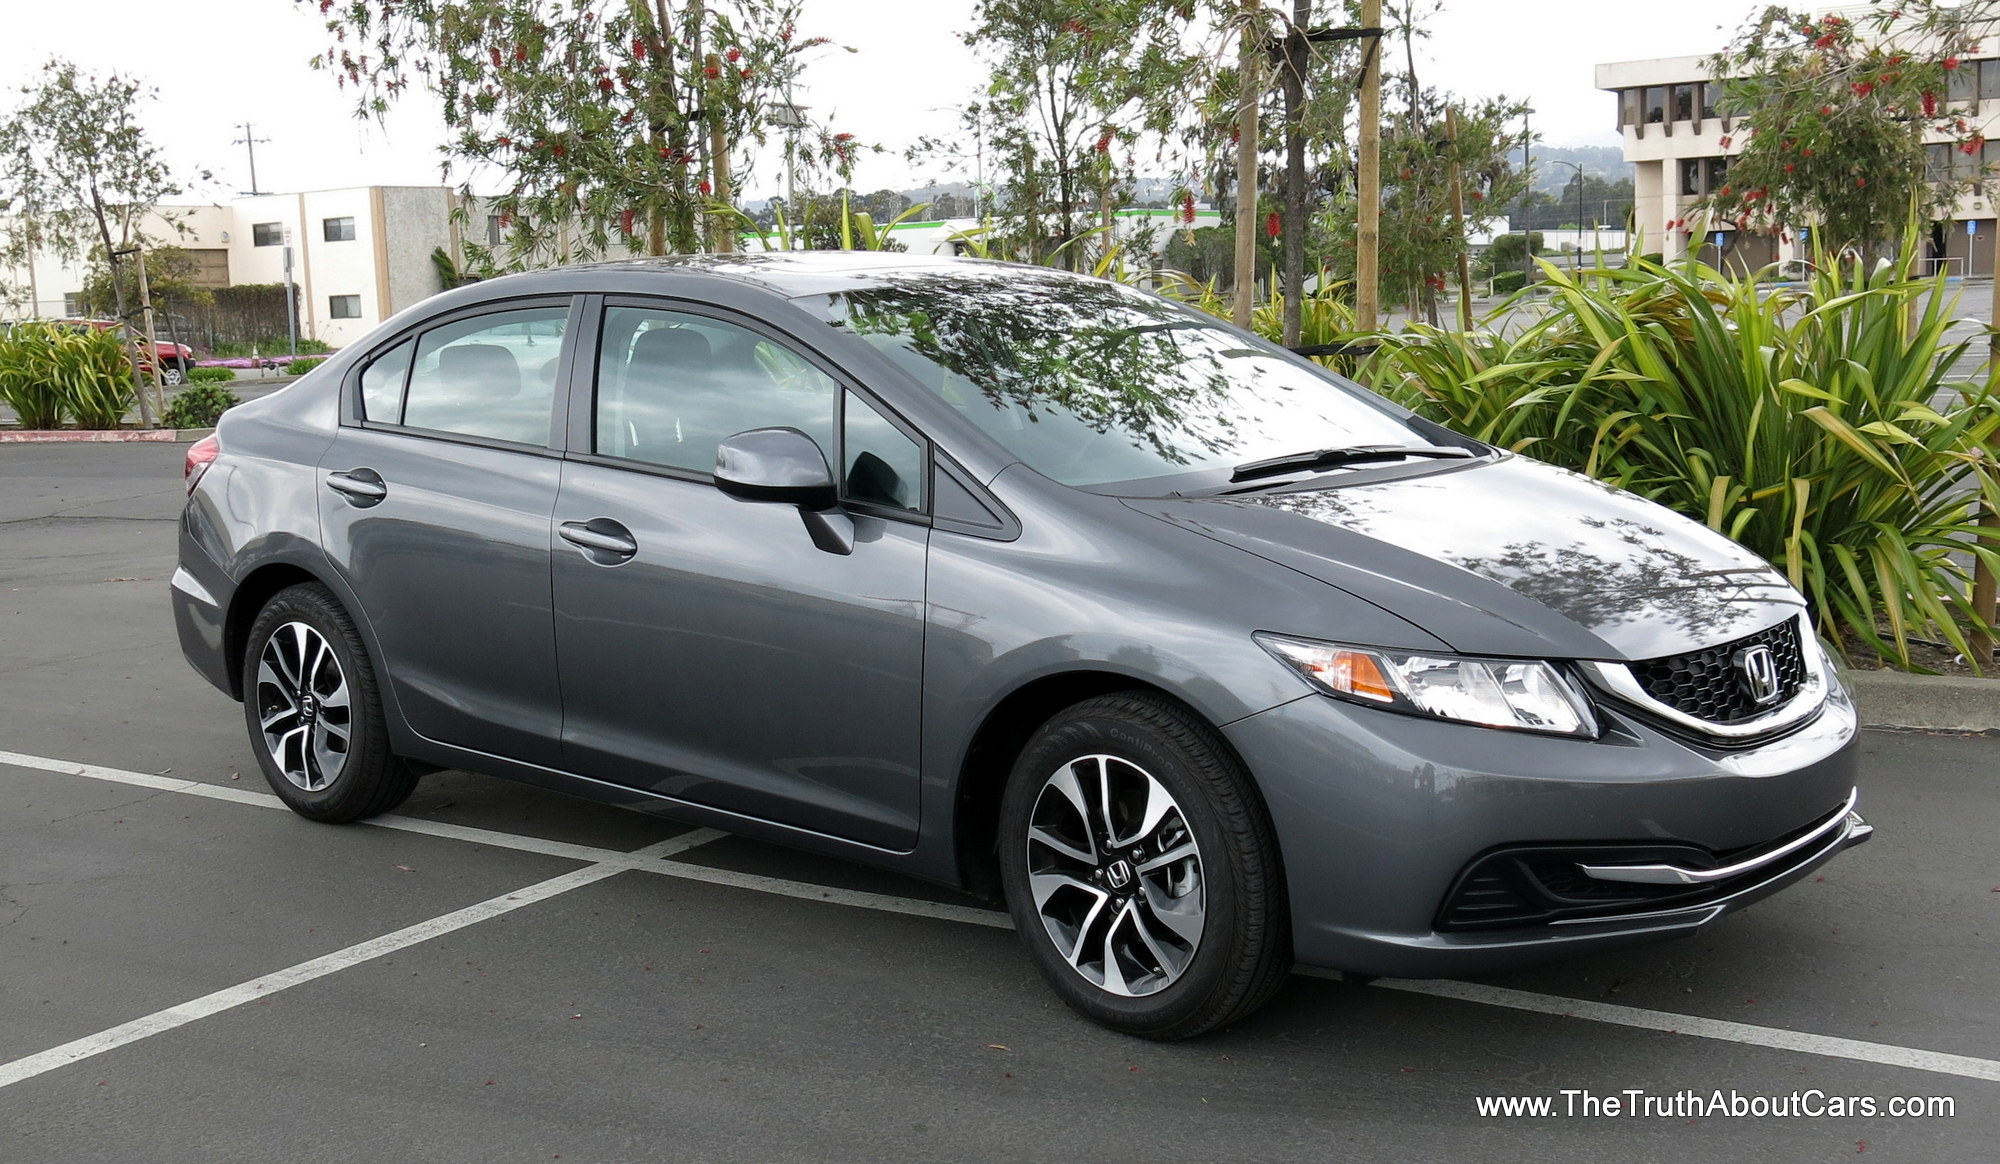 review 2013 honda civic ex video the truth about cars. Black Bedroom Furniture Sets. Home Design Ideas